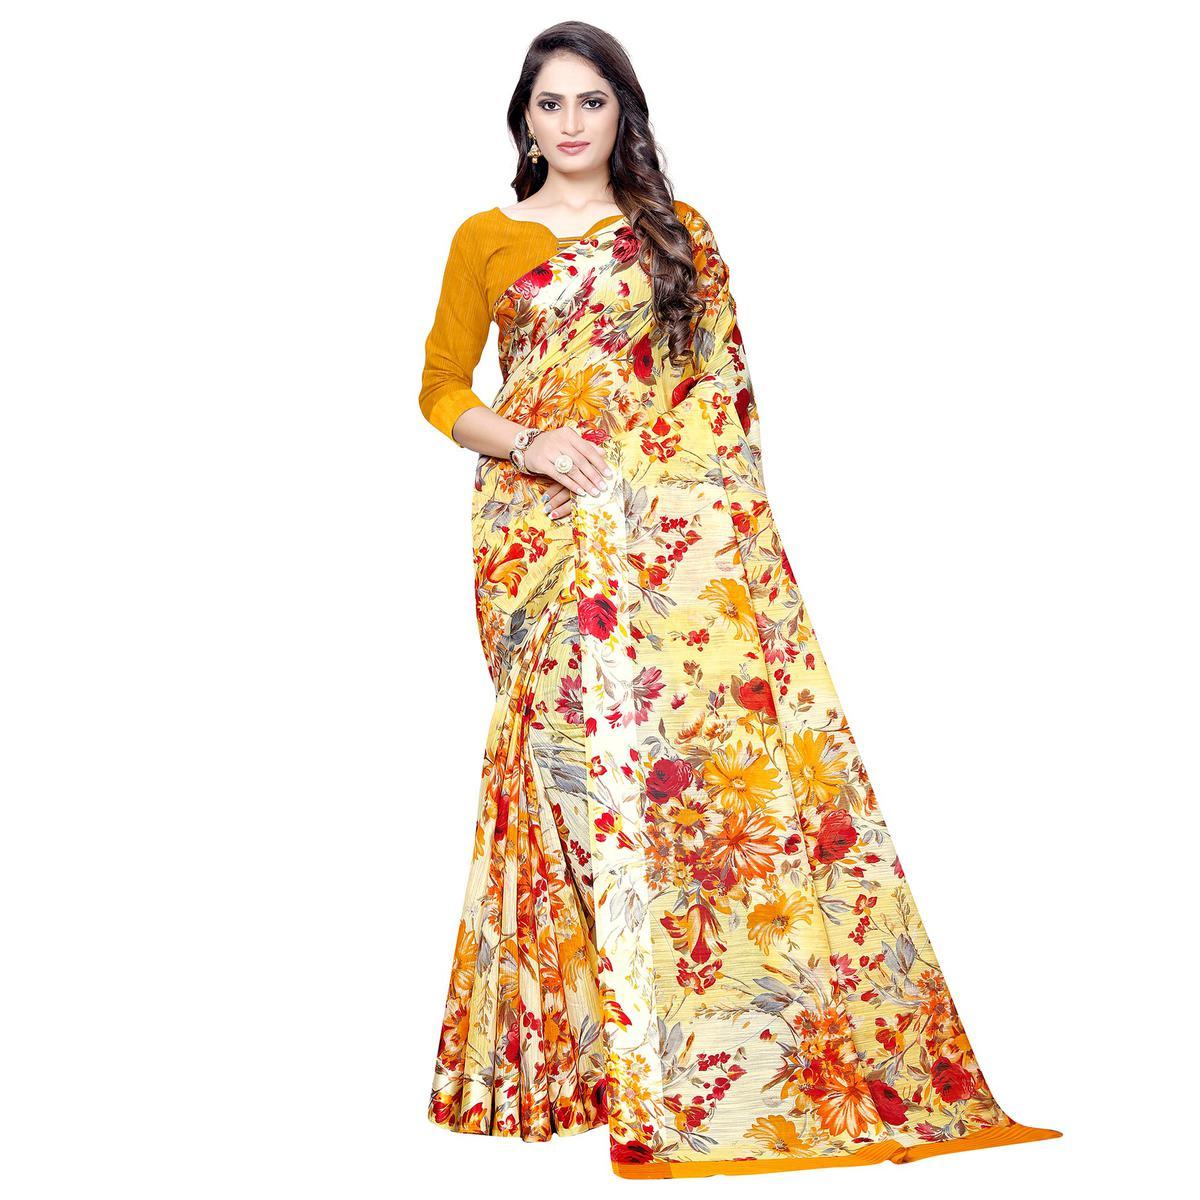 Refreshing Yellow Colored Casual Floral Printed Linen Saree